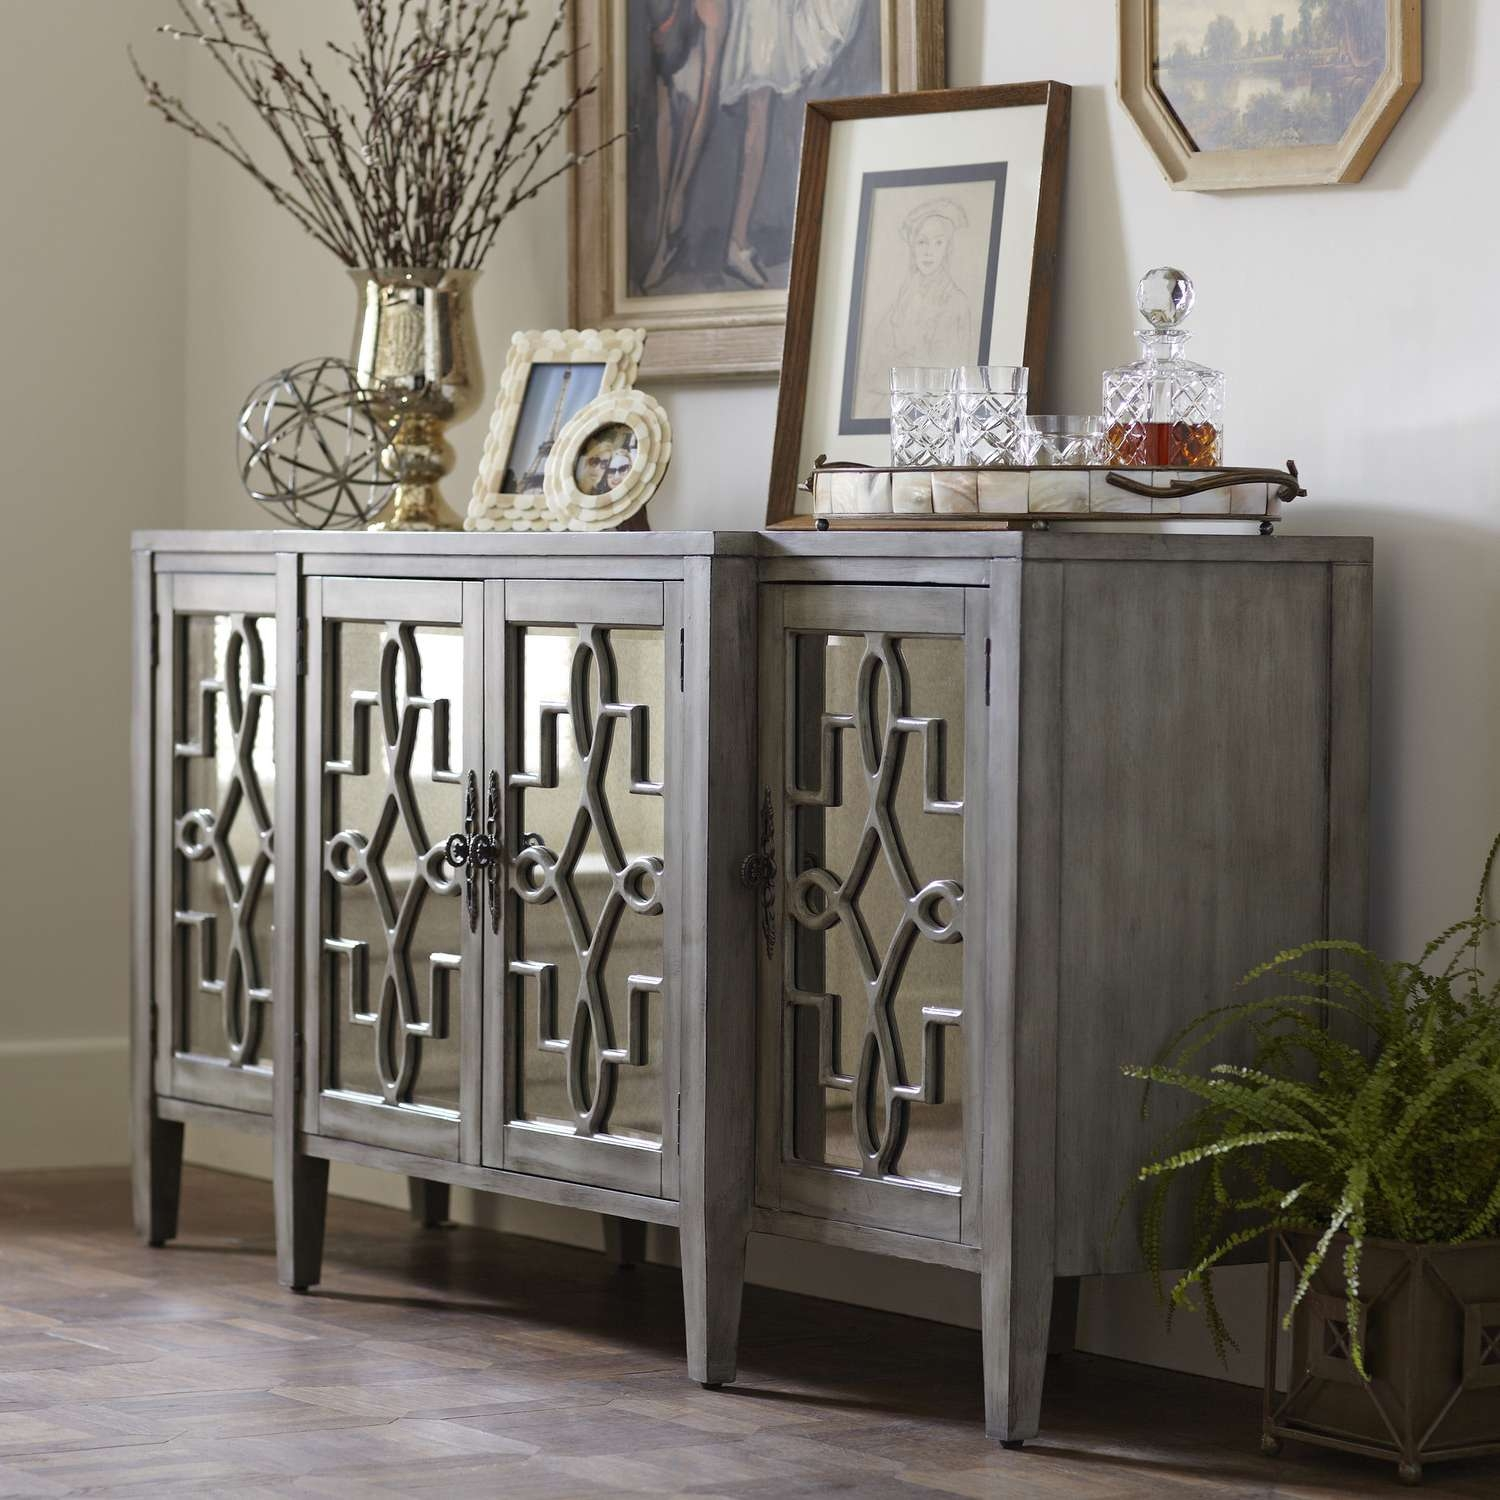 Sideboards Andets Longextra Long Modern Extra Antique Inside Silver Sideboards (View 19 of 20)